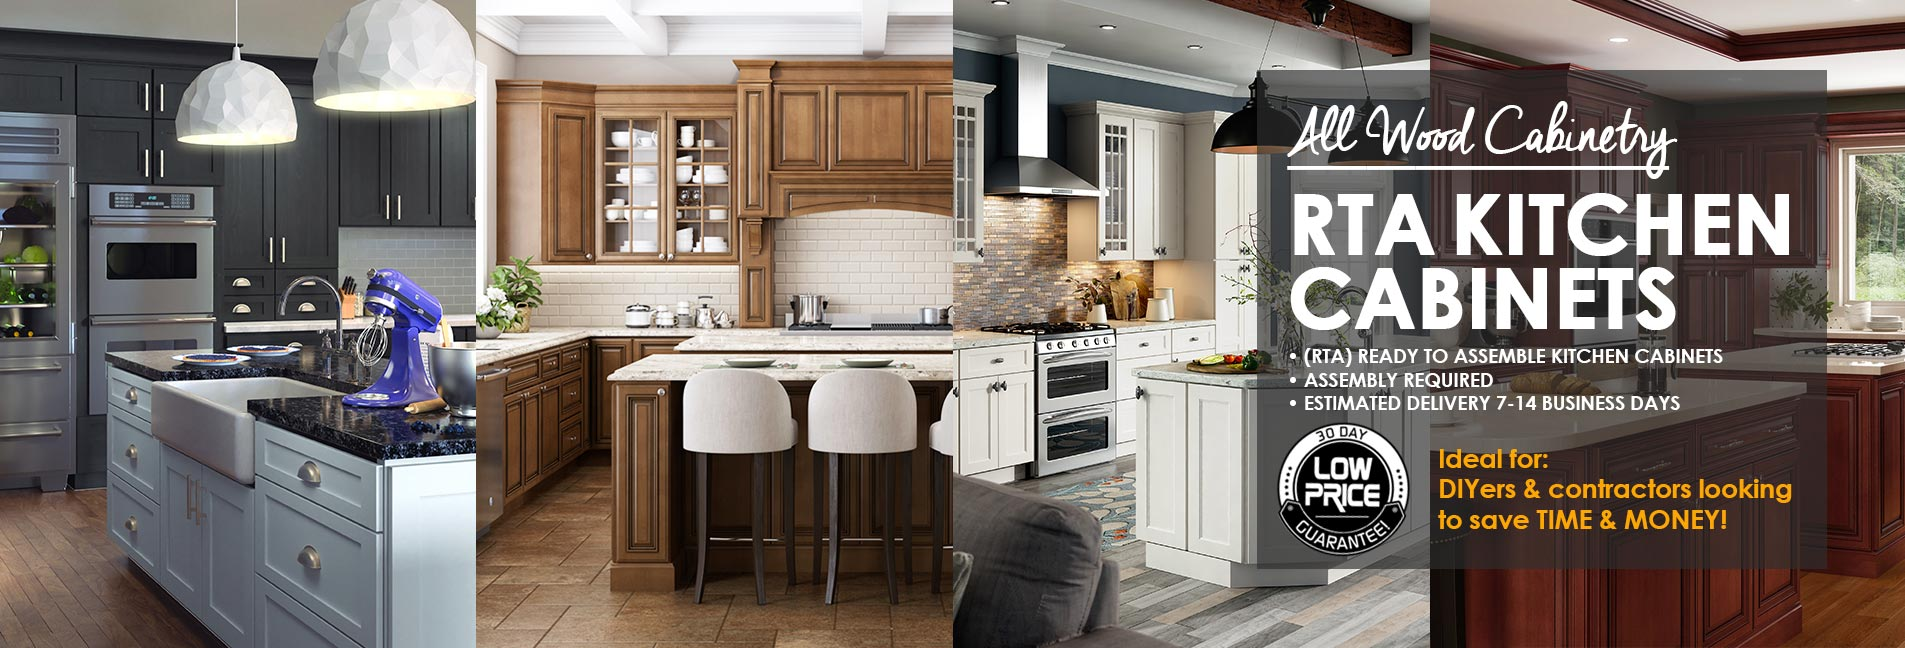 Kitchen cabinets all wood affordable kitchen cabinets wood for Cheap rta kitchen cabinets